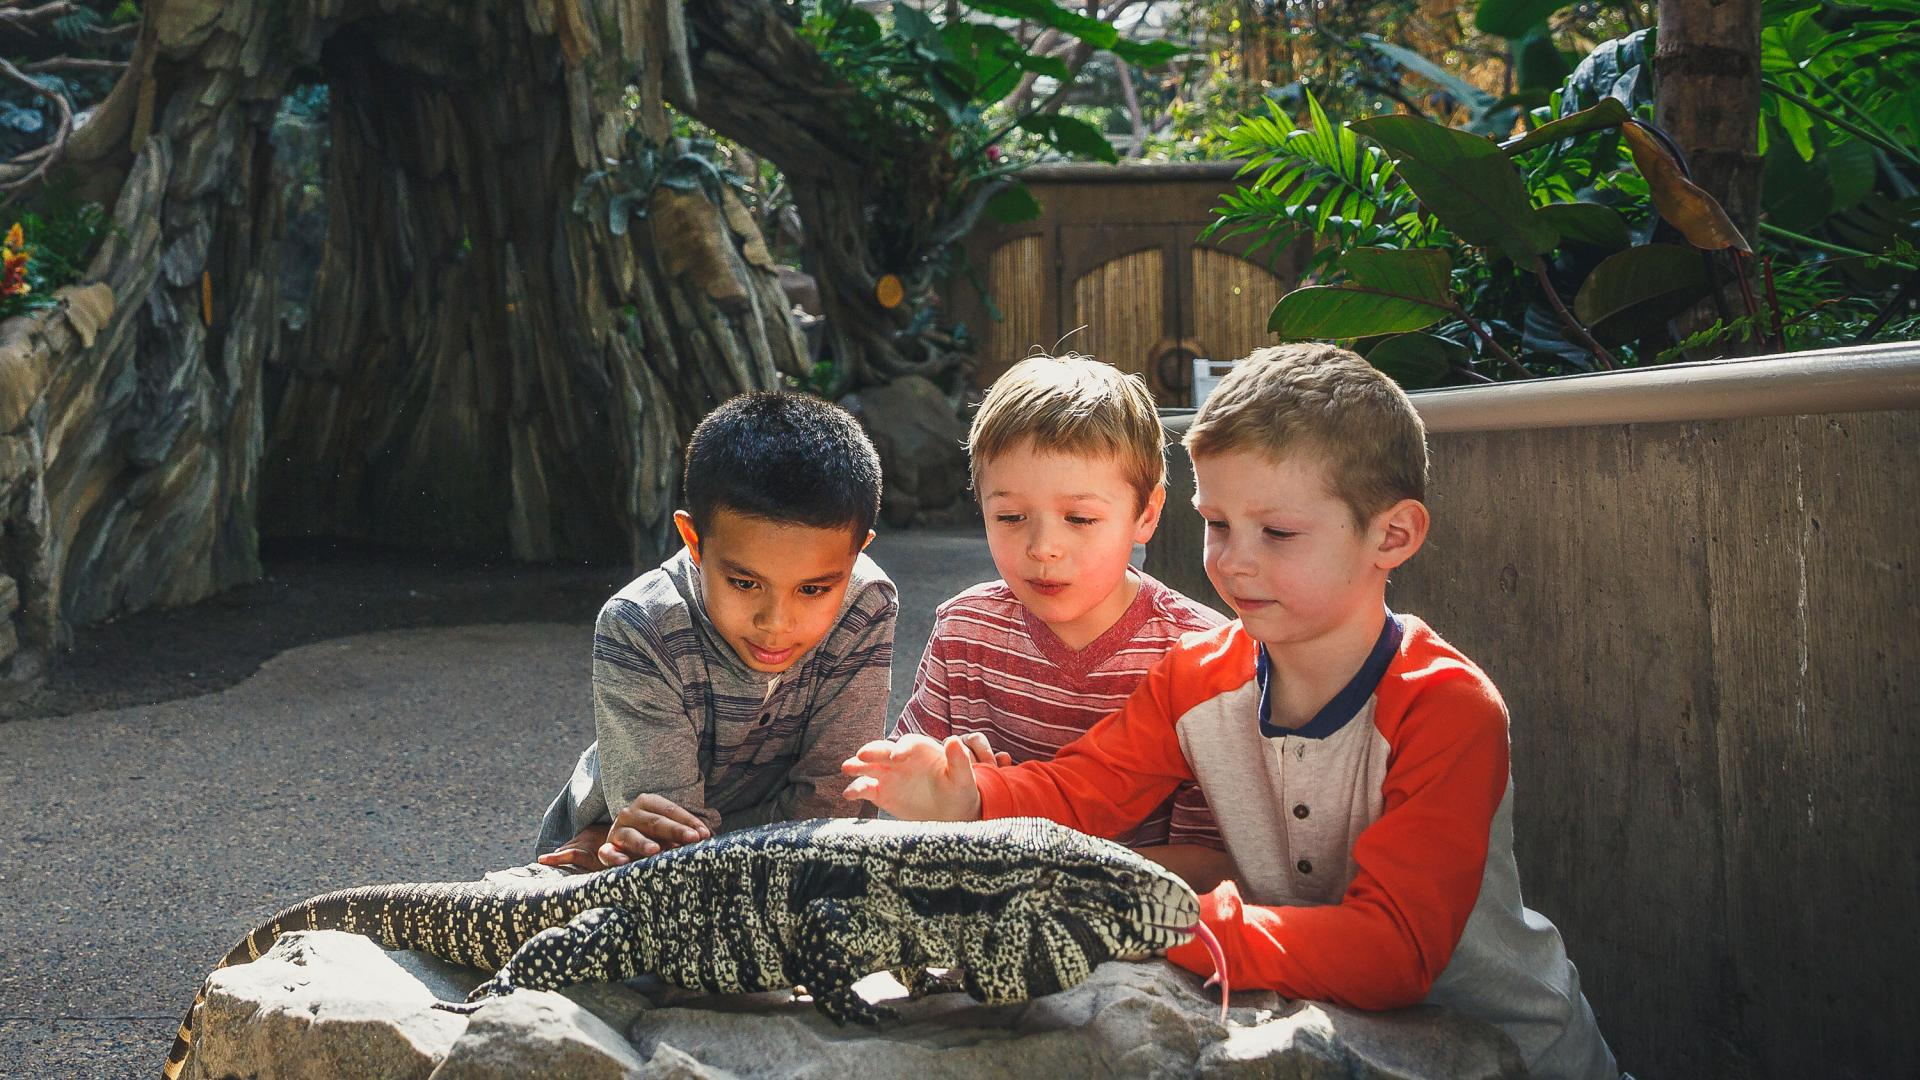 Kids with reptile at Minnesota Zoo